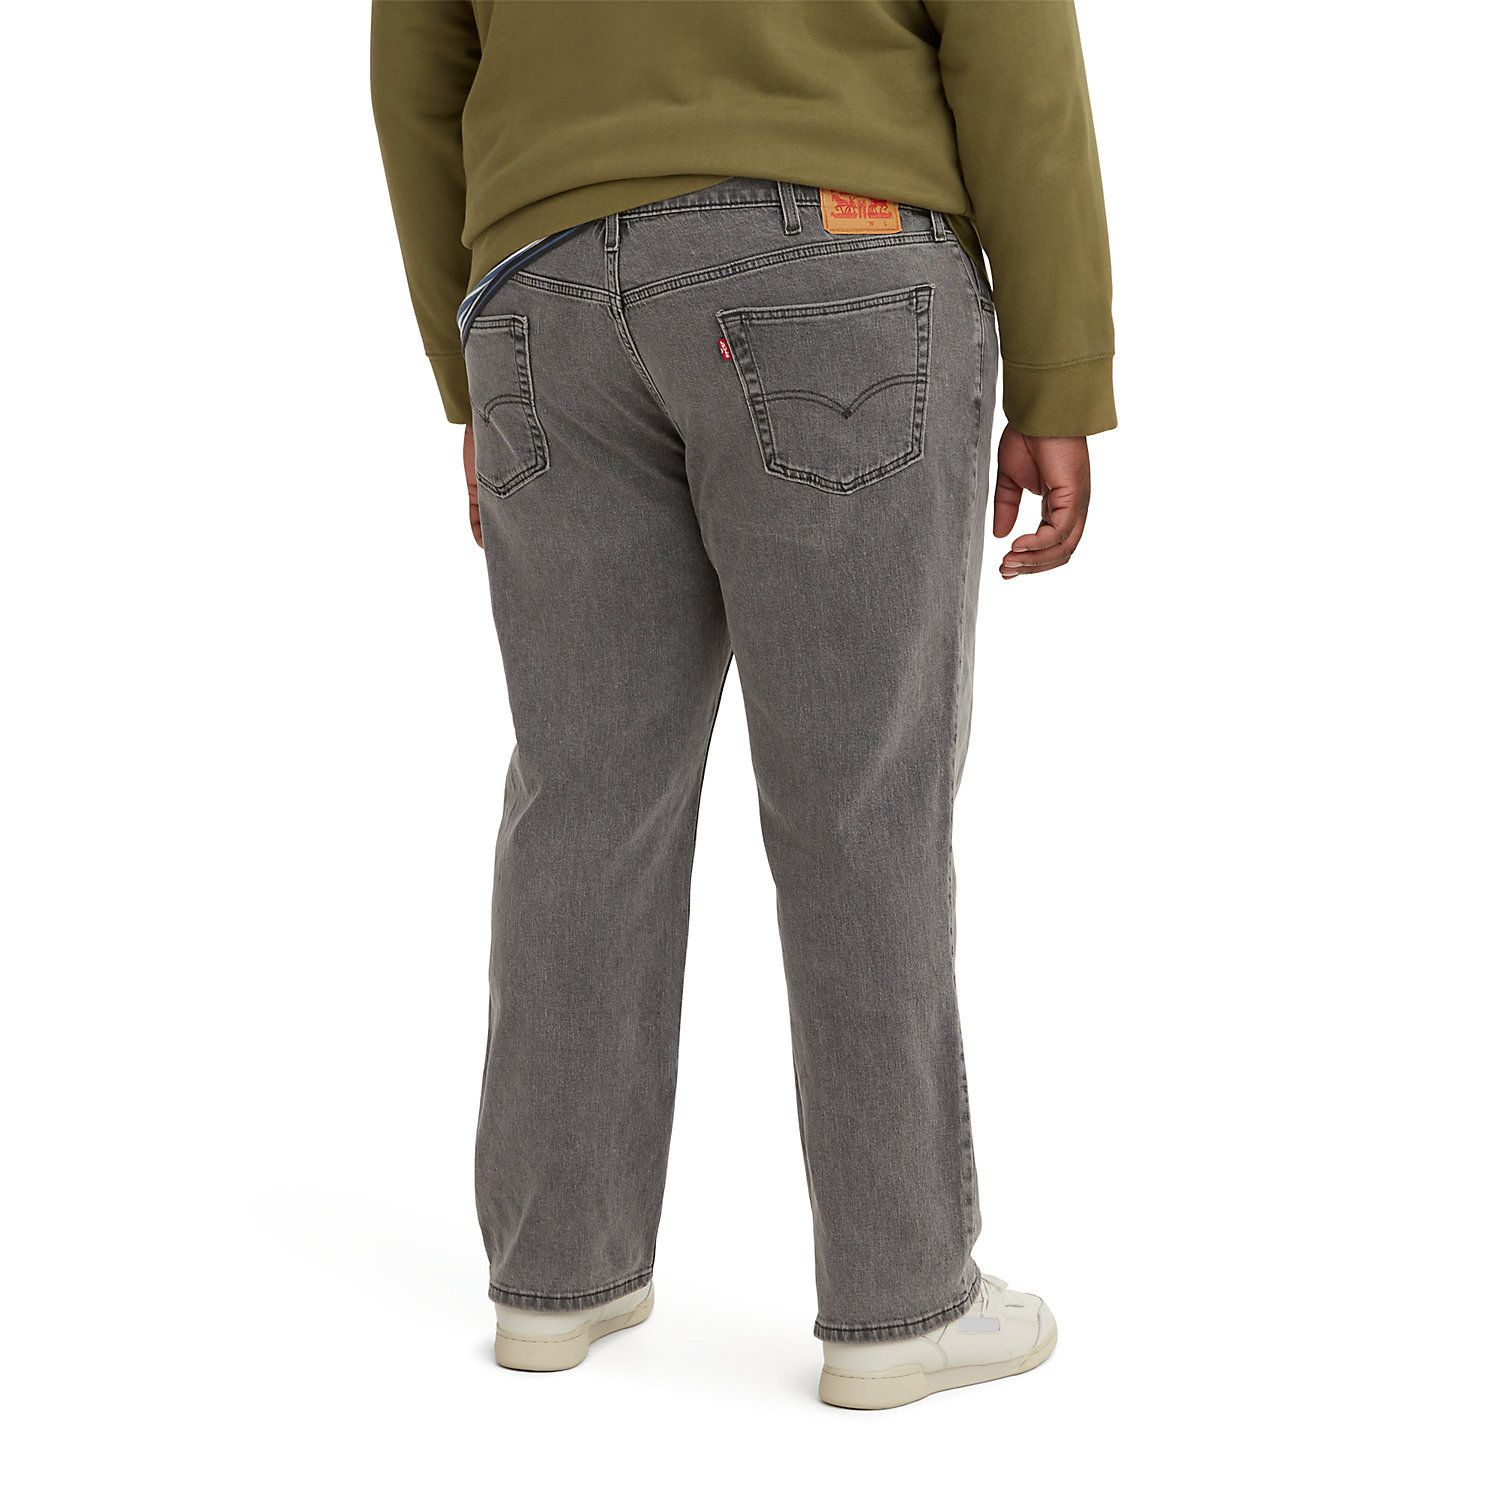 7958dde1 Mens Big & Tall Relaxed Jeans - Bottoms, Clothing | Kohl's